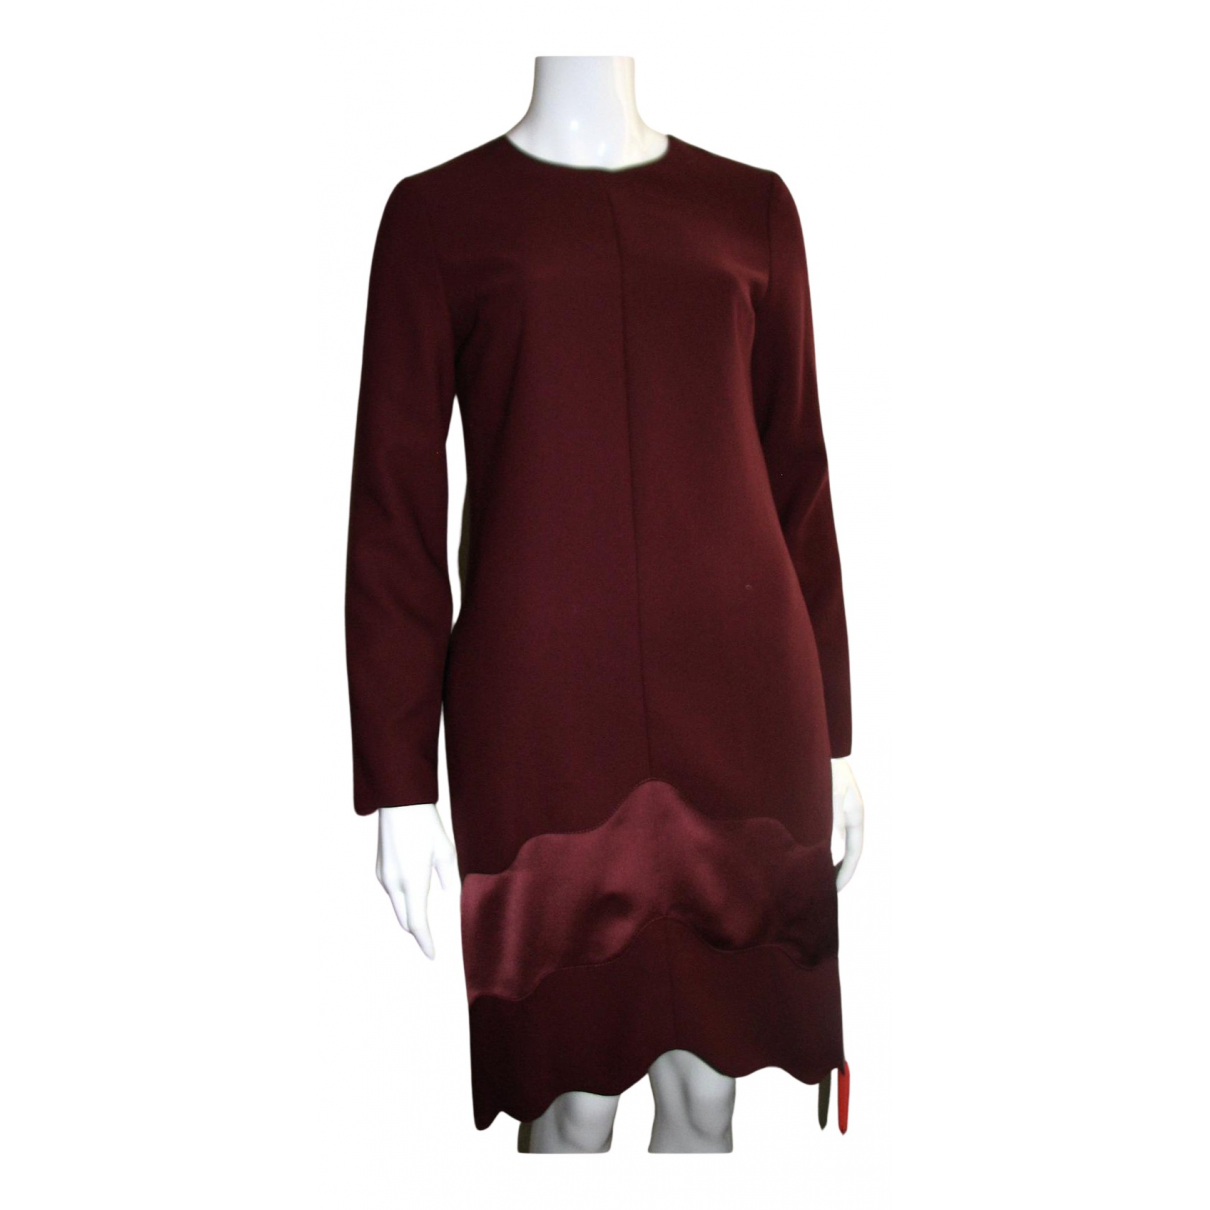 Carven \N Kleid in  Bordeauxrot Polyester